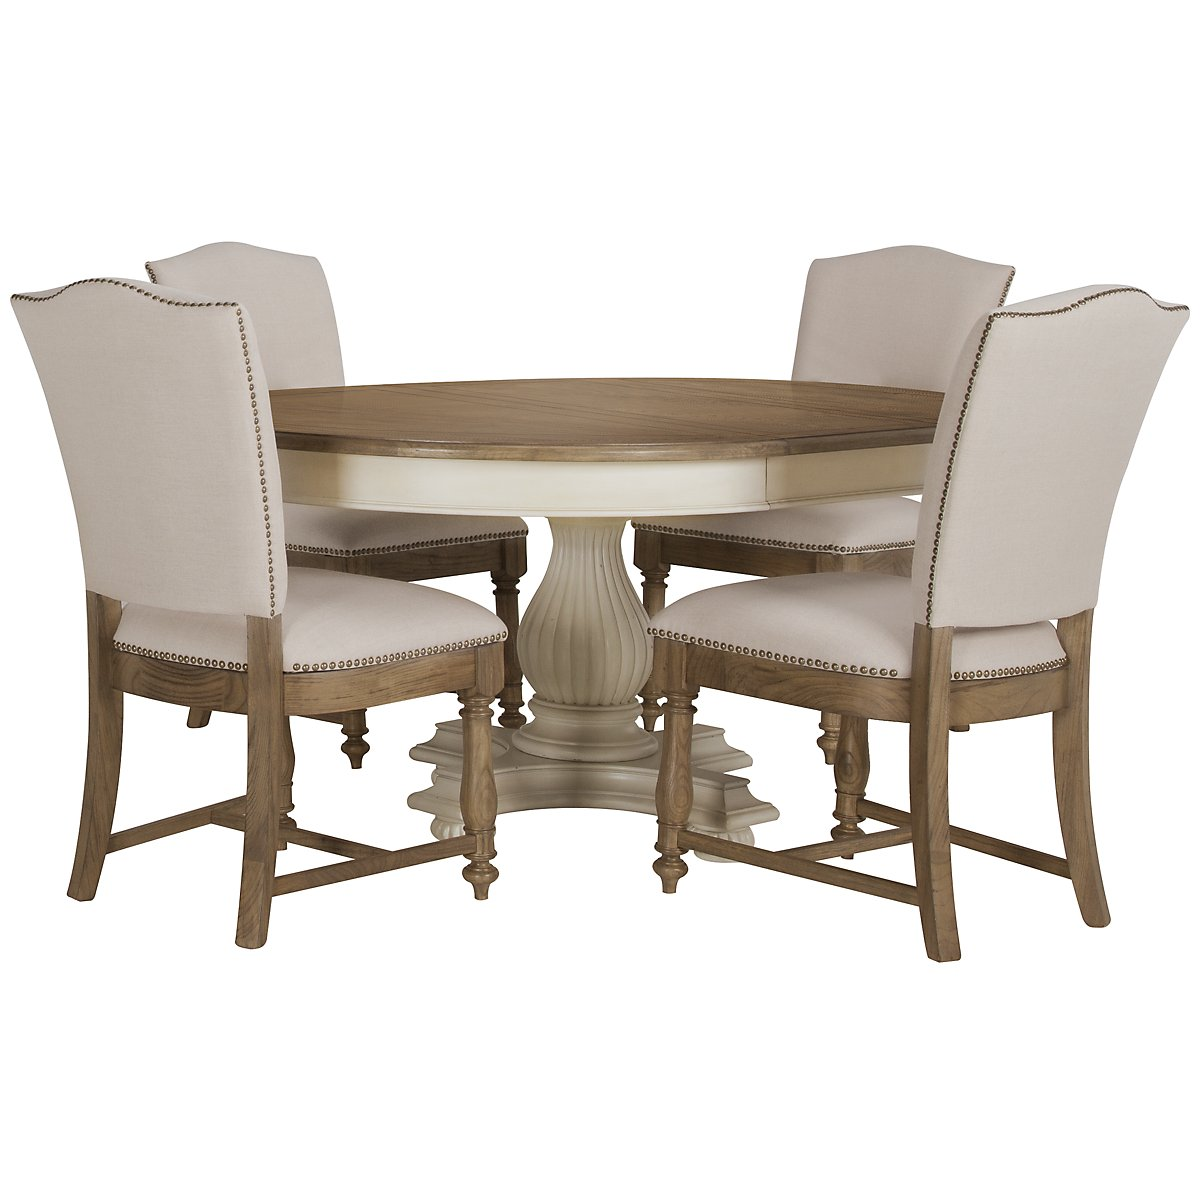 City furniture coventry two tone round table 4 for Dining room table for 2